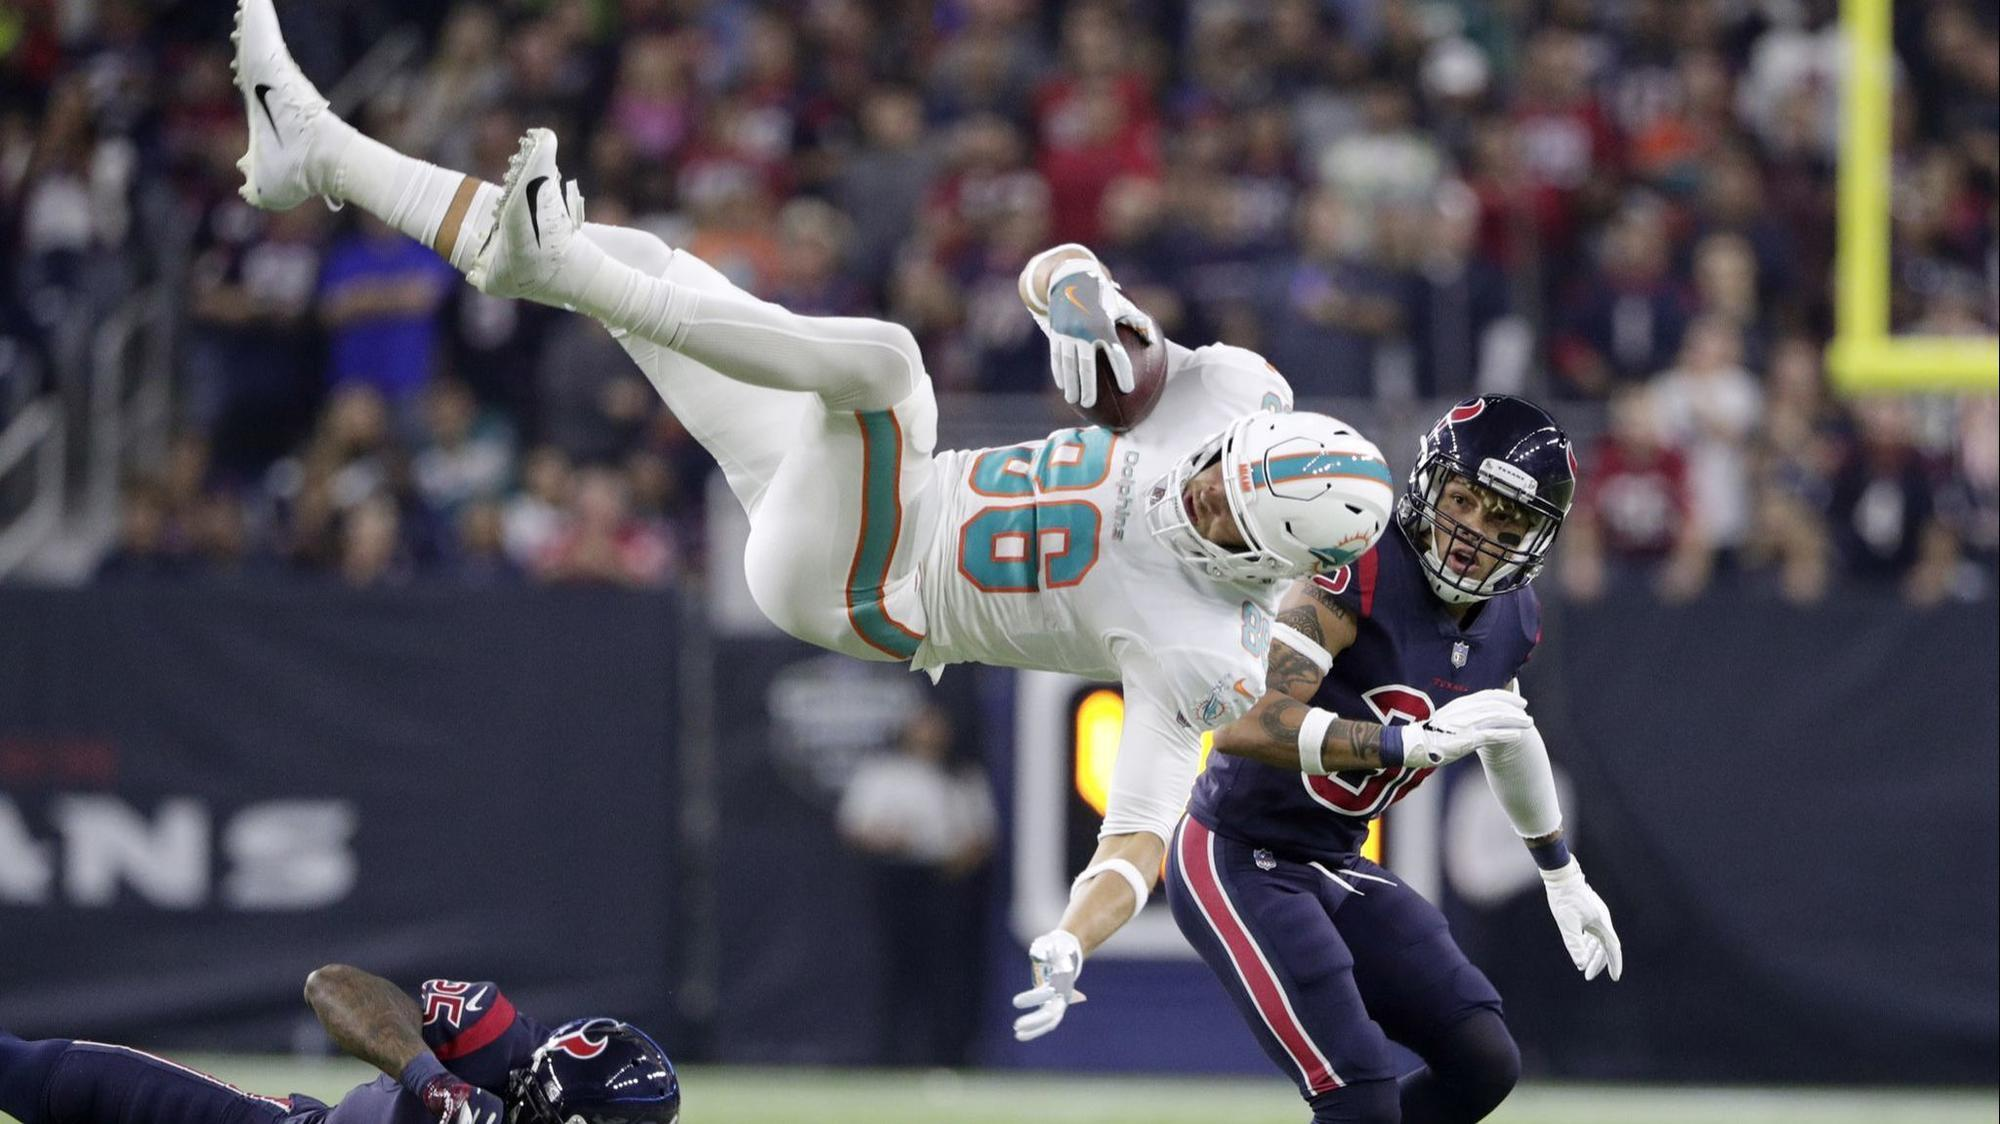 e28c90e6d Dolphins hope jumping Mike Gesicki makes better decisions before taking  flight - Sun Sentinel